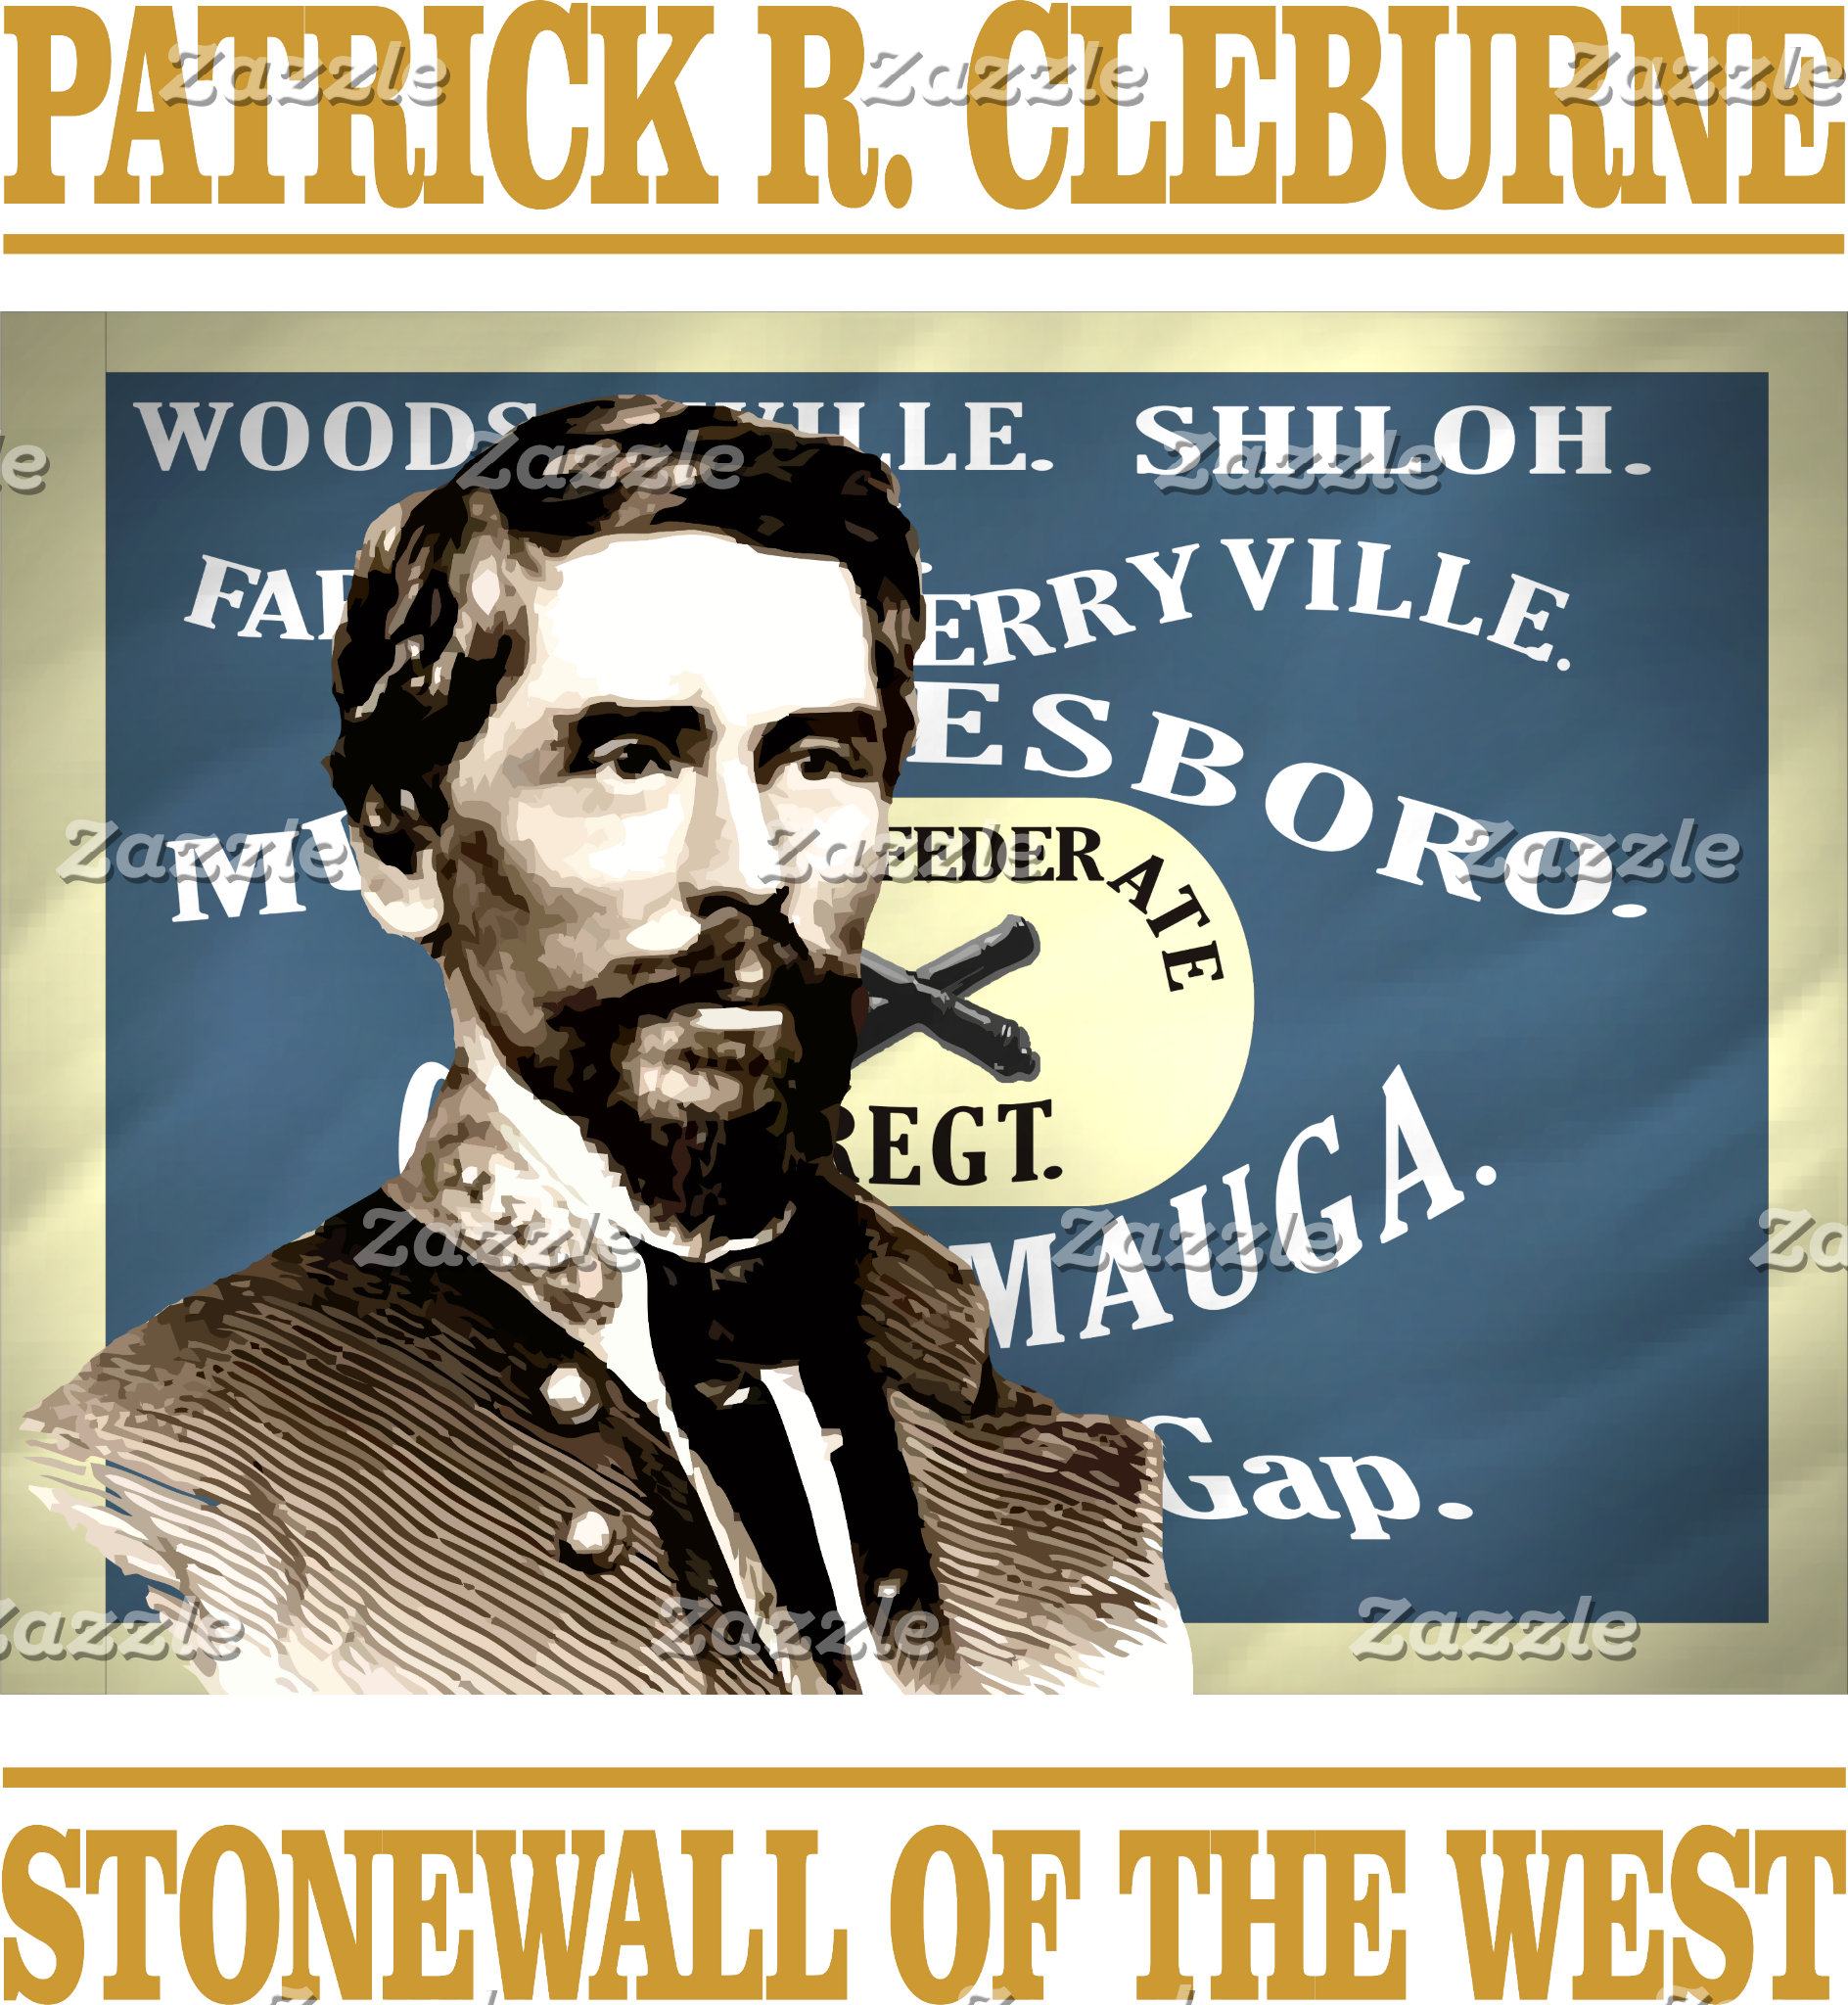 Patrick R Cleburne -Stonewall of the West